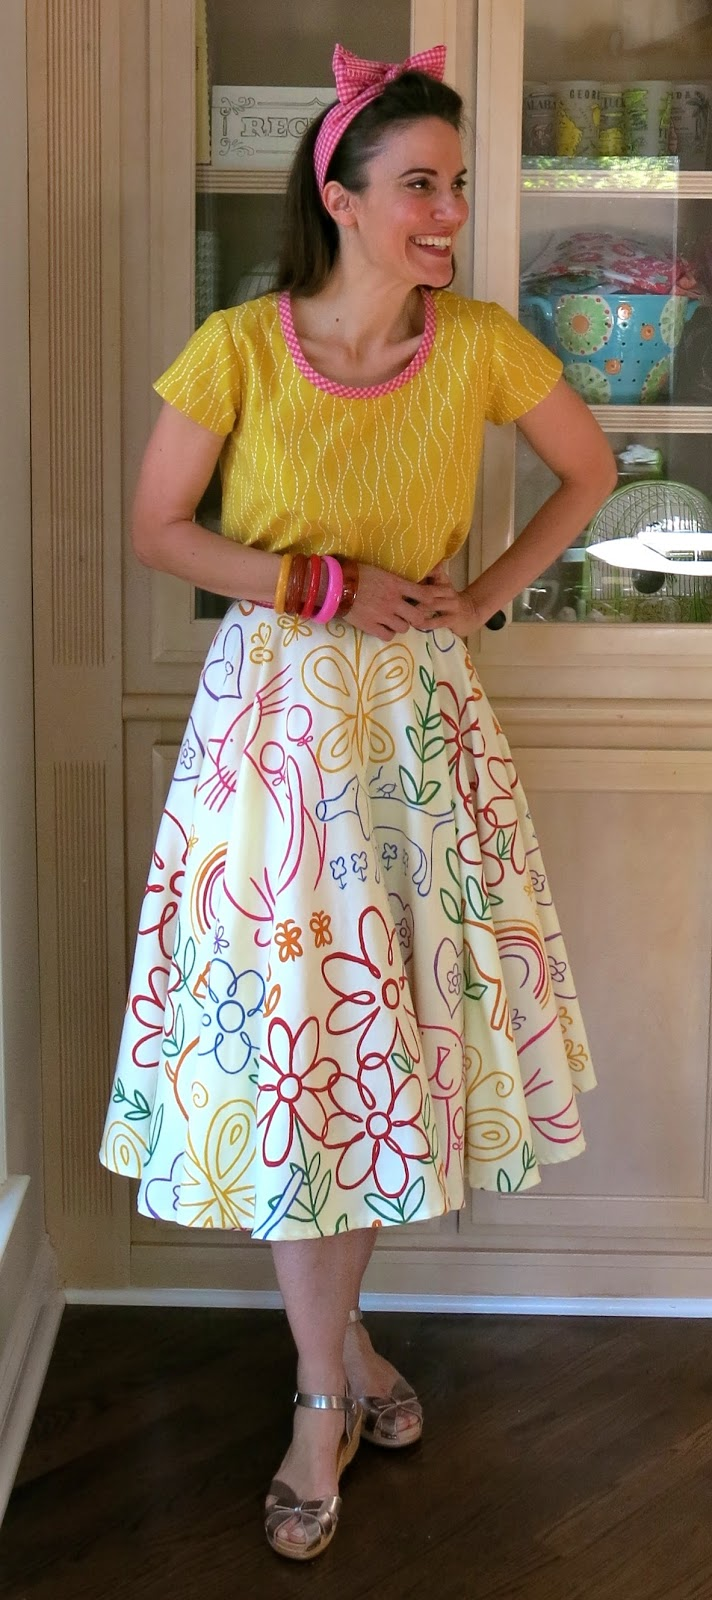 Cassie Stephens DIY The Oodles Of Doodles Shower Curtain Skirt